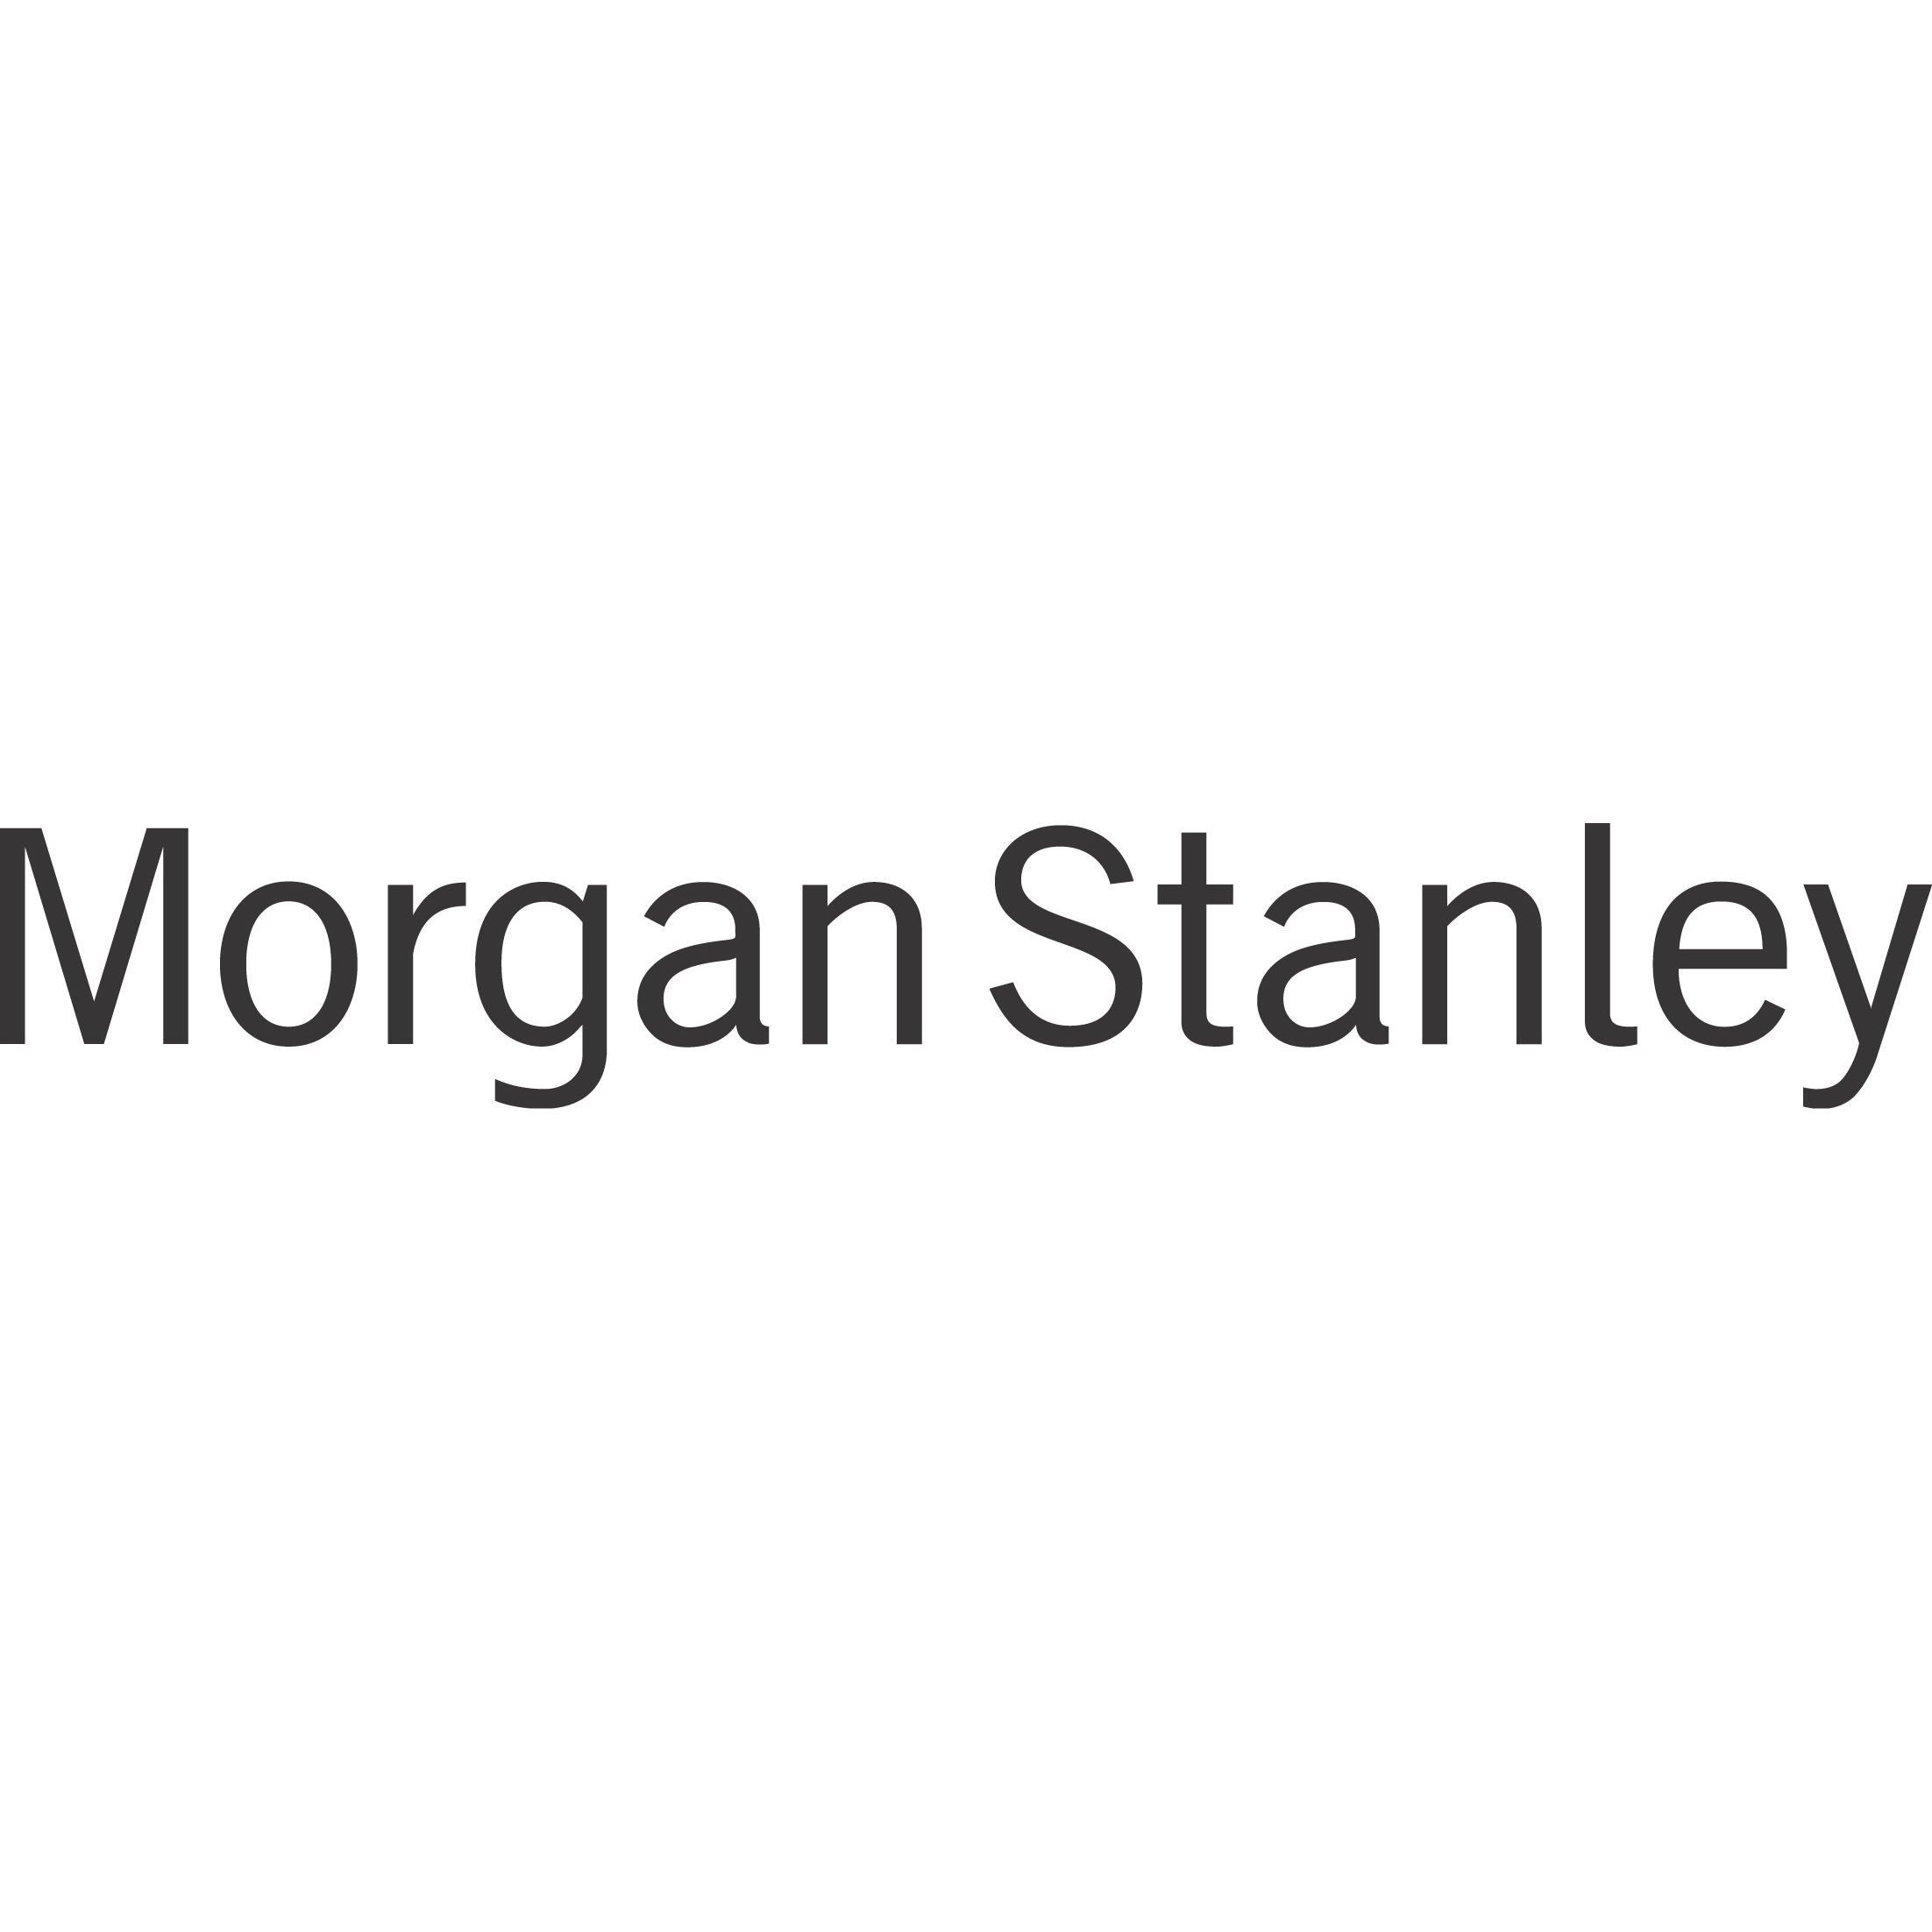 Susan L Smith - Morgan Stanley | Financial Advisor in Atlanta,Georgia